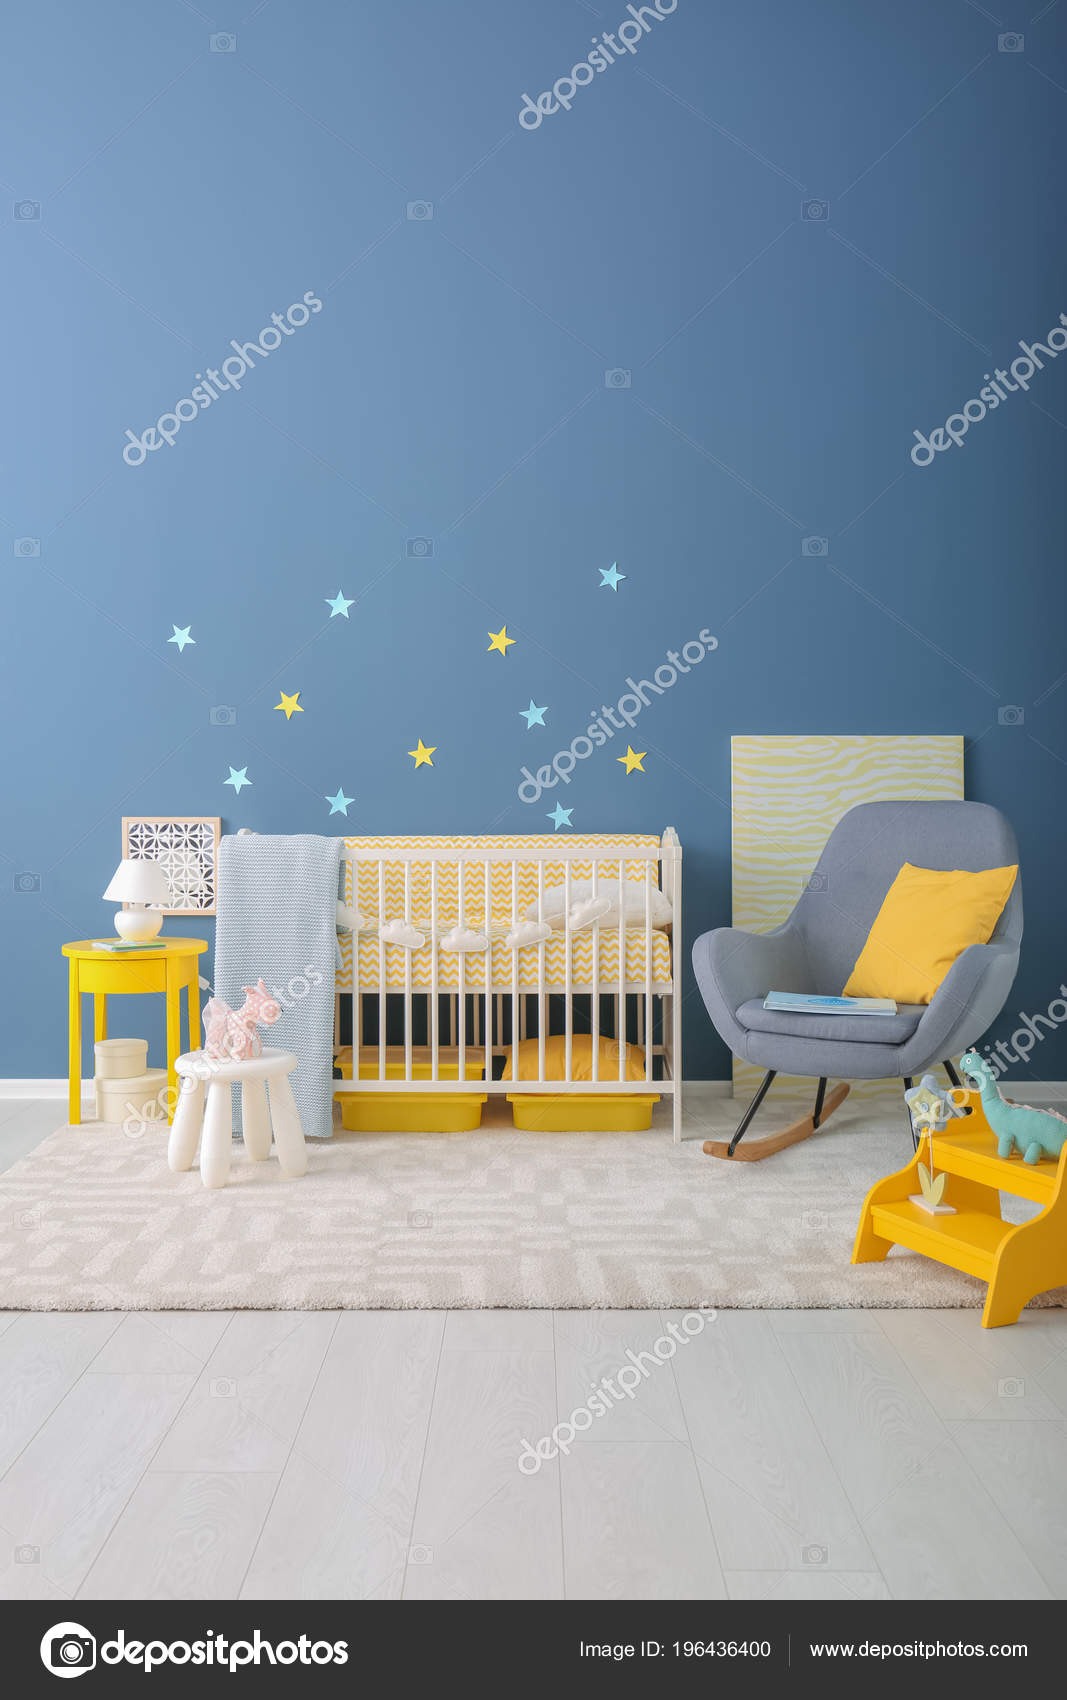 Peachy Baby Room Interior Crib Rocking Chair Wall Stock Photo Ncnpc Chair Design For Home Ncnpcorg